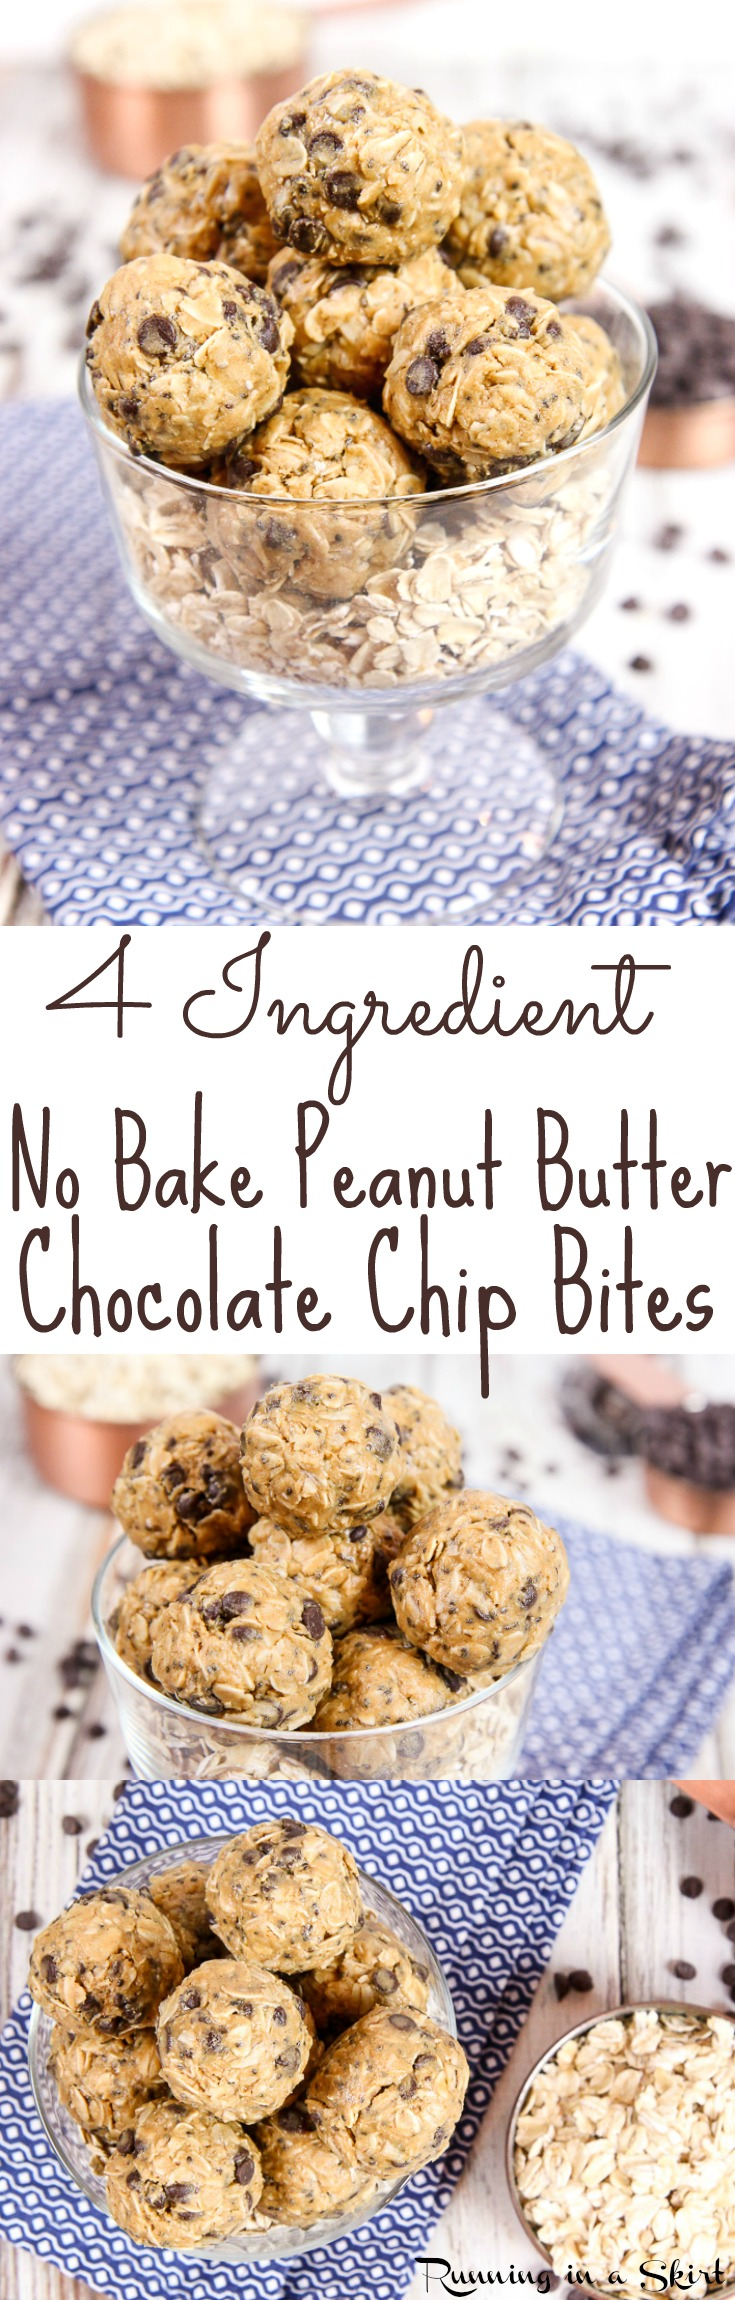 4 Ingredient Healthy No Bake Peanut Butter Bites recipe with Chocolate Chips! Perfect for healthy snacks or a sweet treat without the guilt. With chia seeds! Dairy free, gluten free, vegan friendly, vegetarian and no added sugar. / Running in a Skirt via @juliewunder